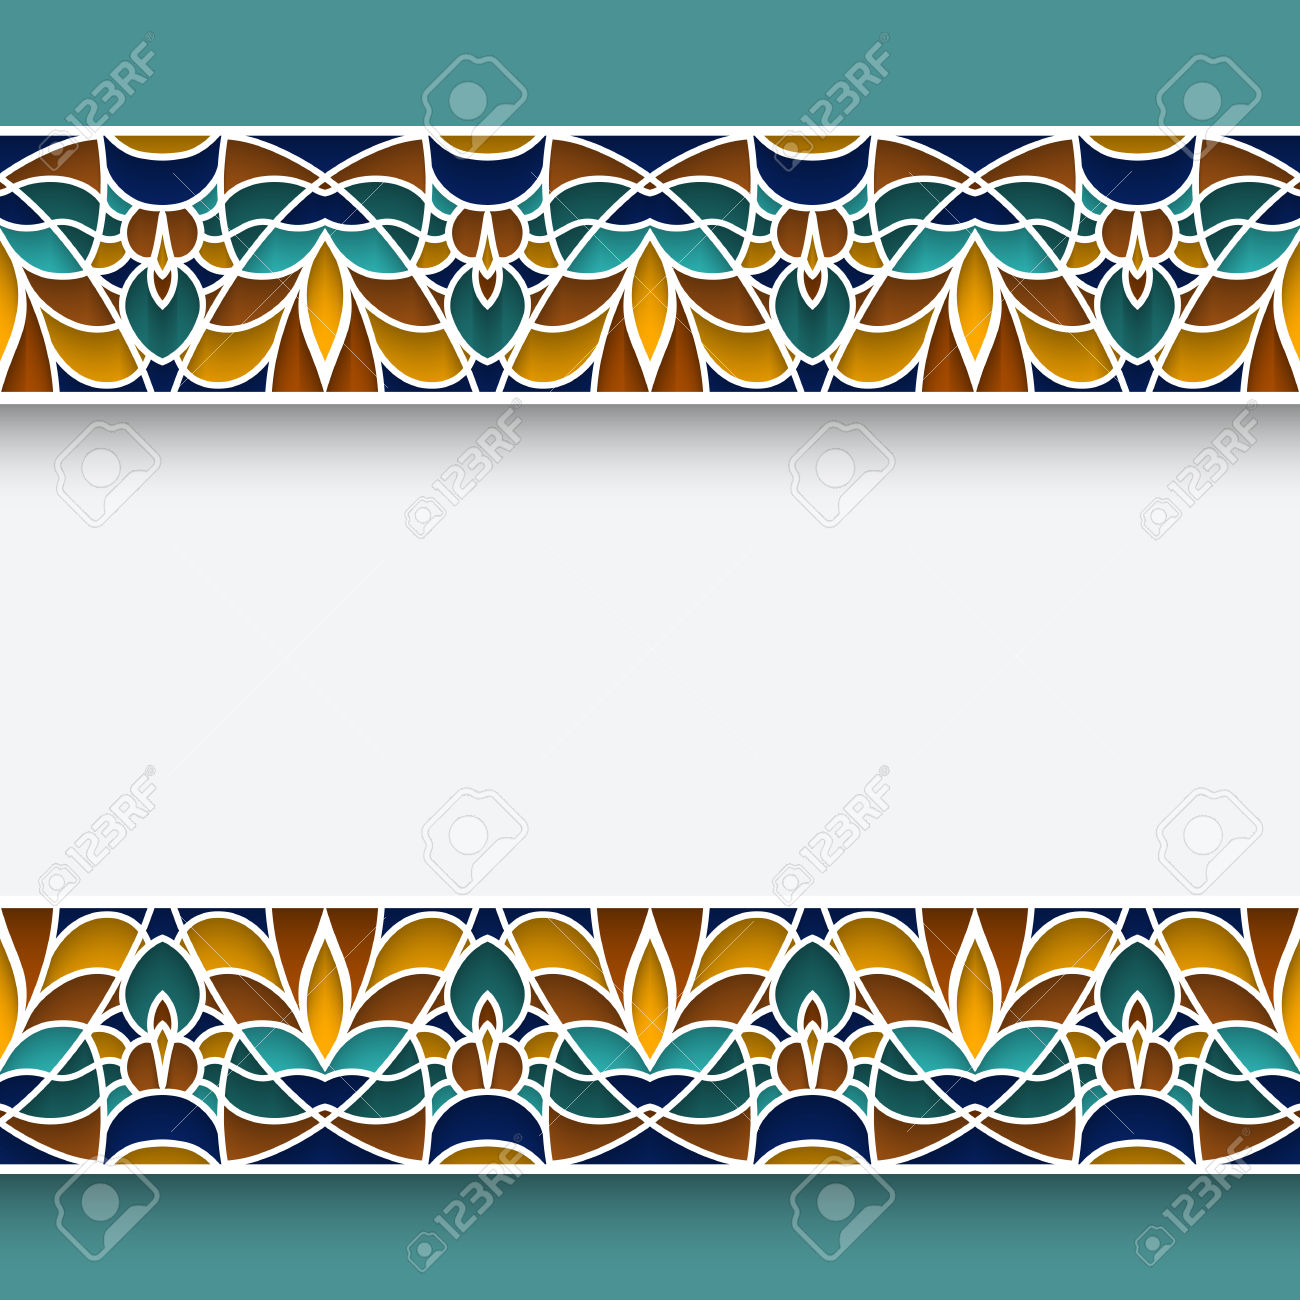 Mosaic Frame With Ornamental Majolica Border Lines In Moorish.